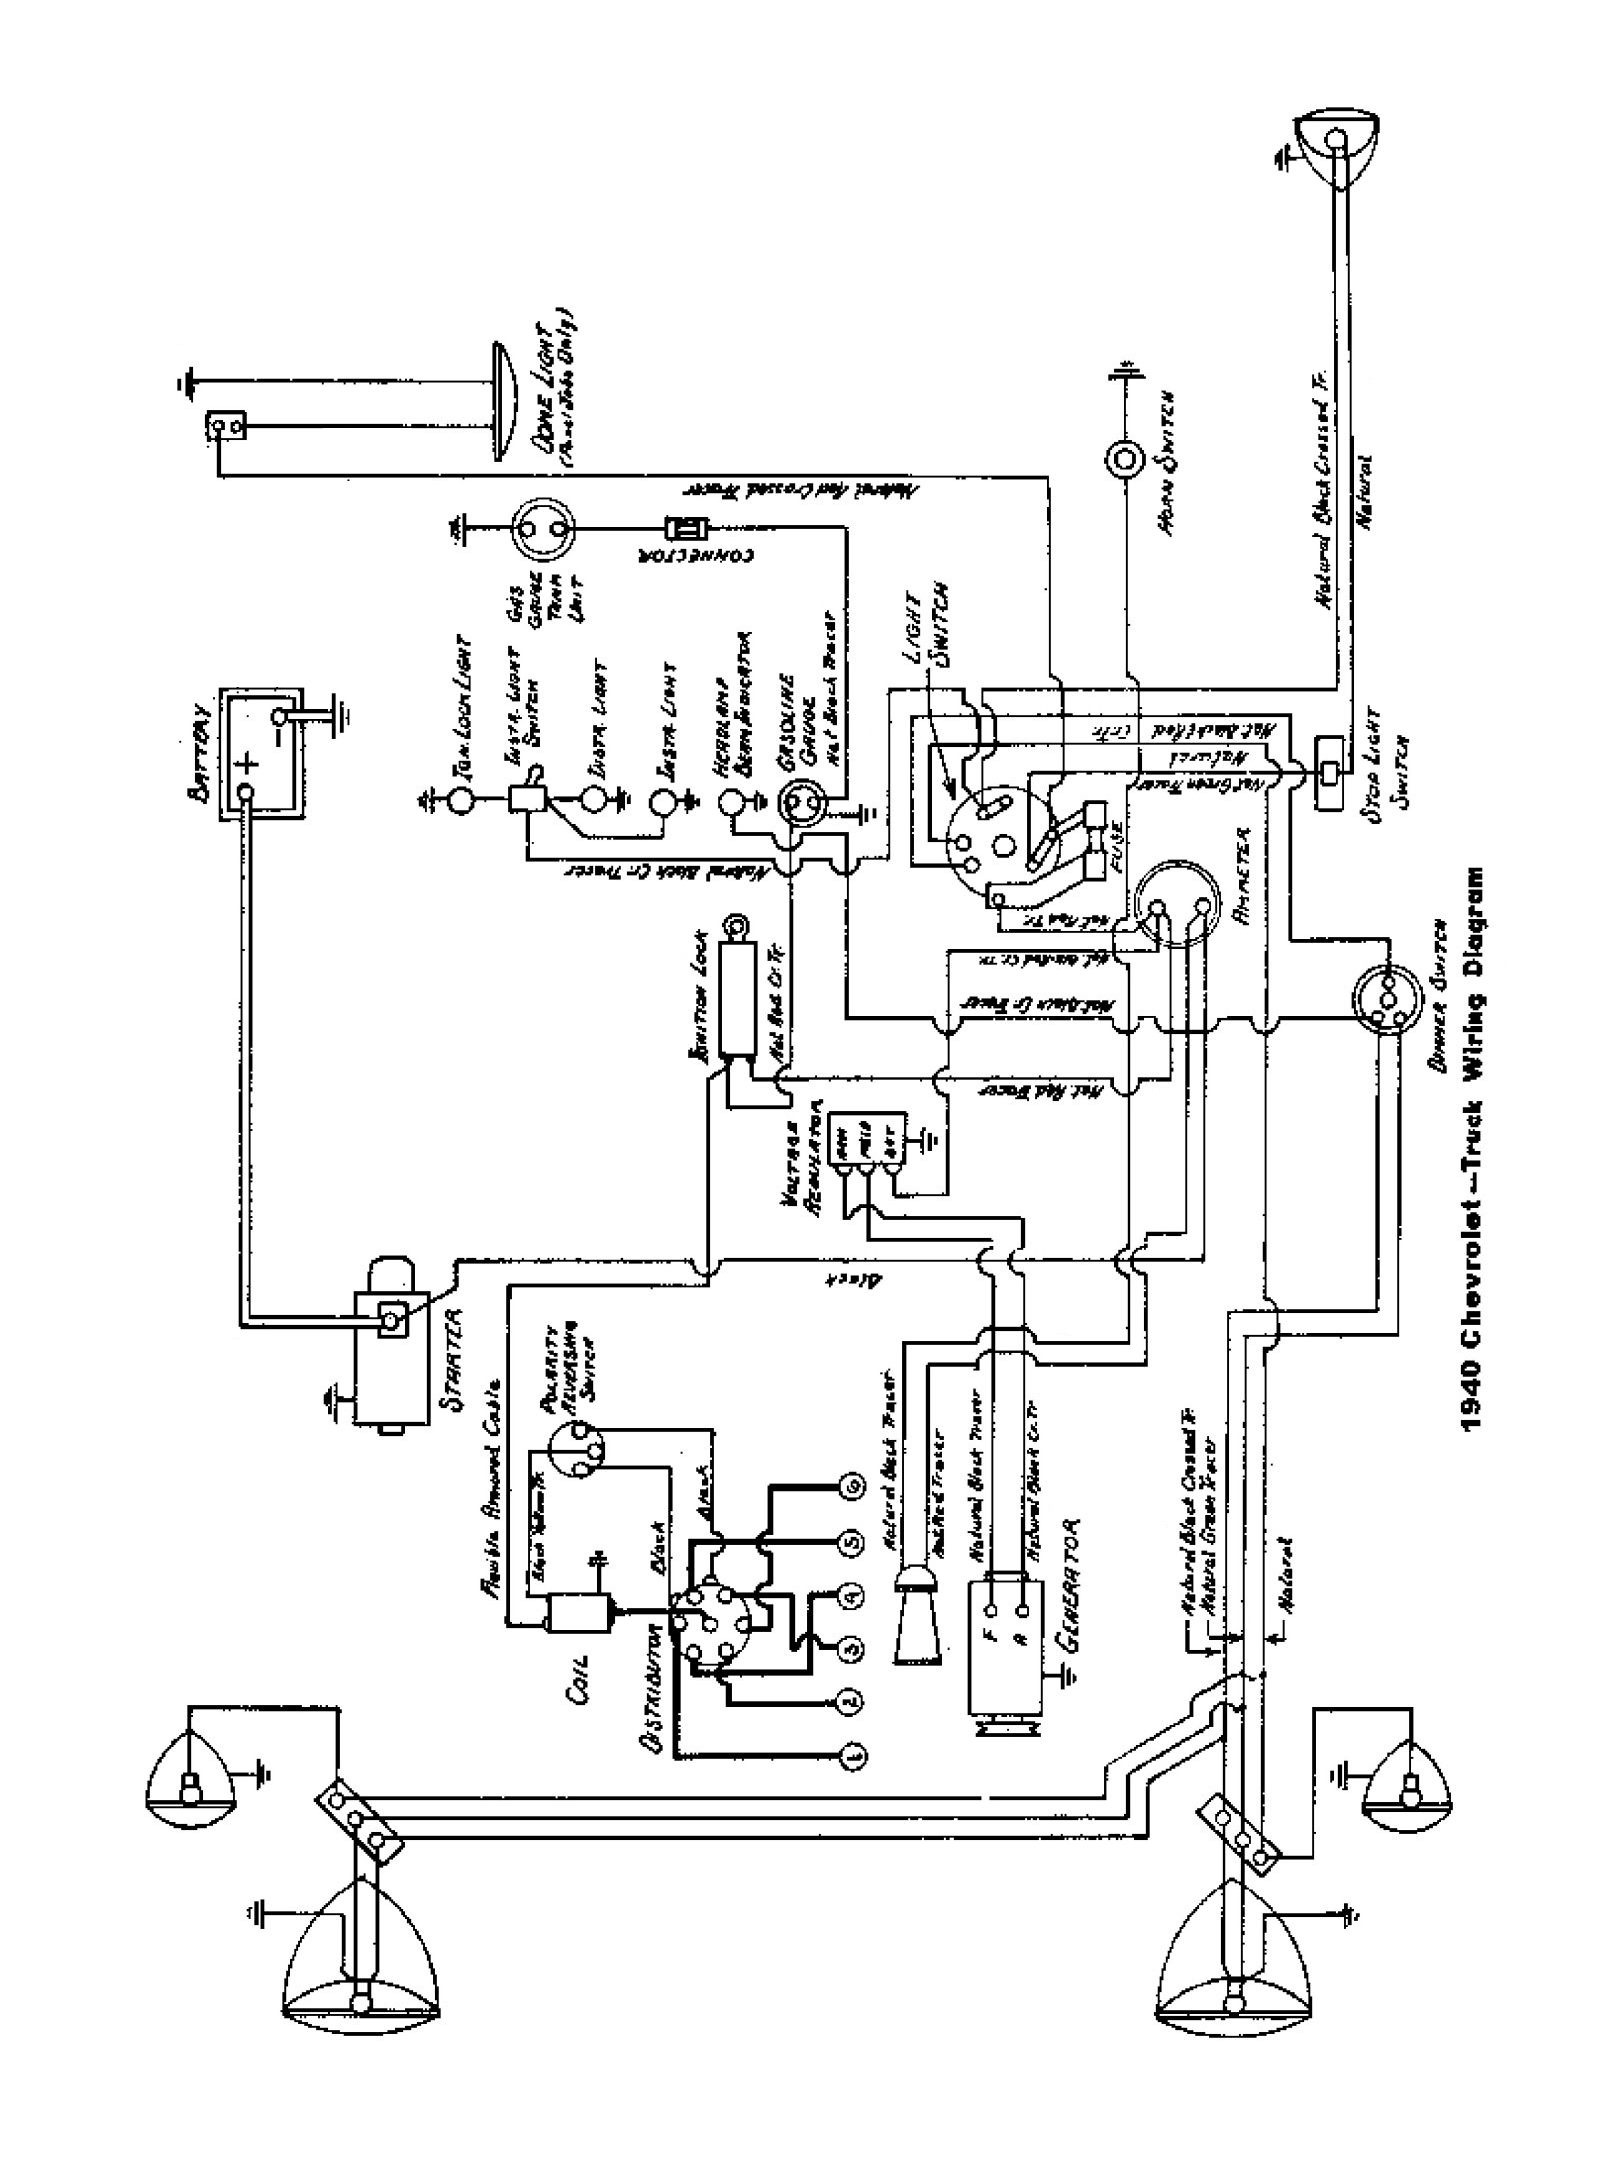 40truck chevy wiring diagrams 1953 chevy truck wiring diagram at bayanpartner.co